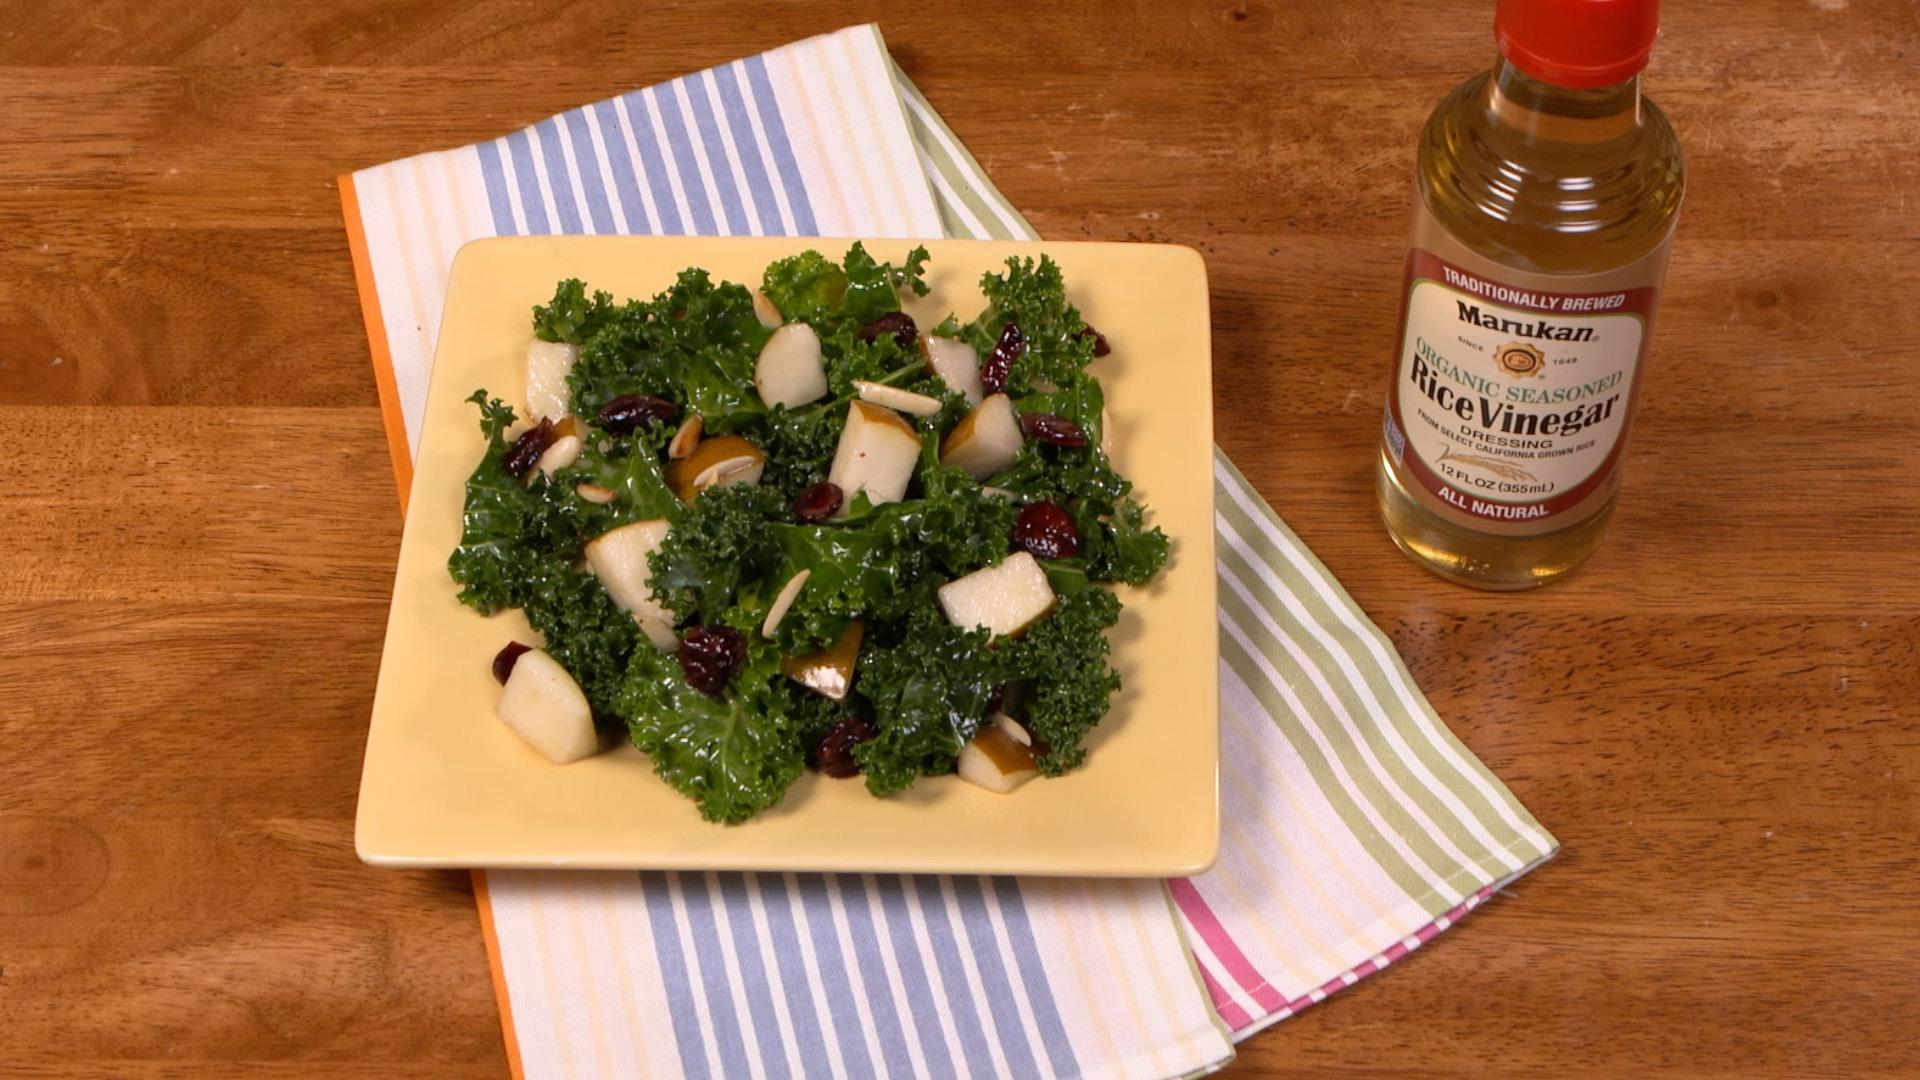 Torn Kale Salad with Jammin' Rice Vinaigrette